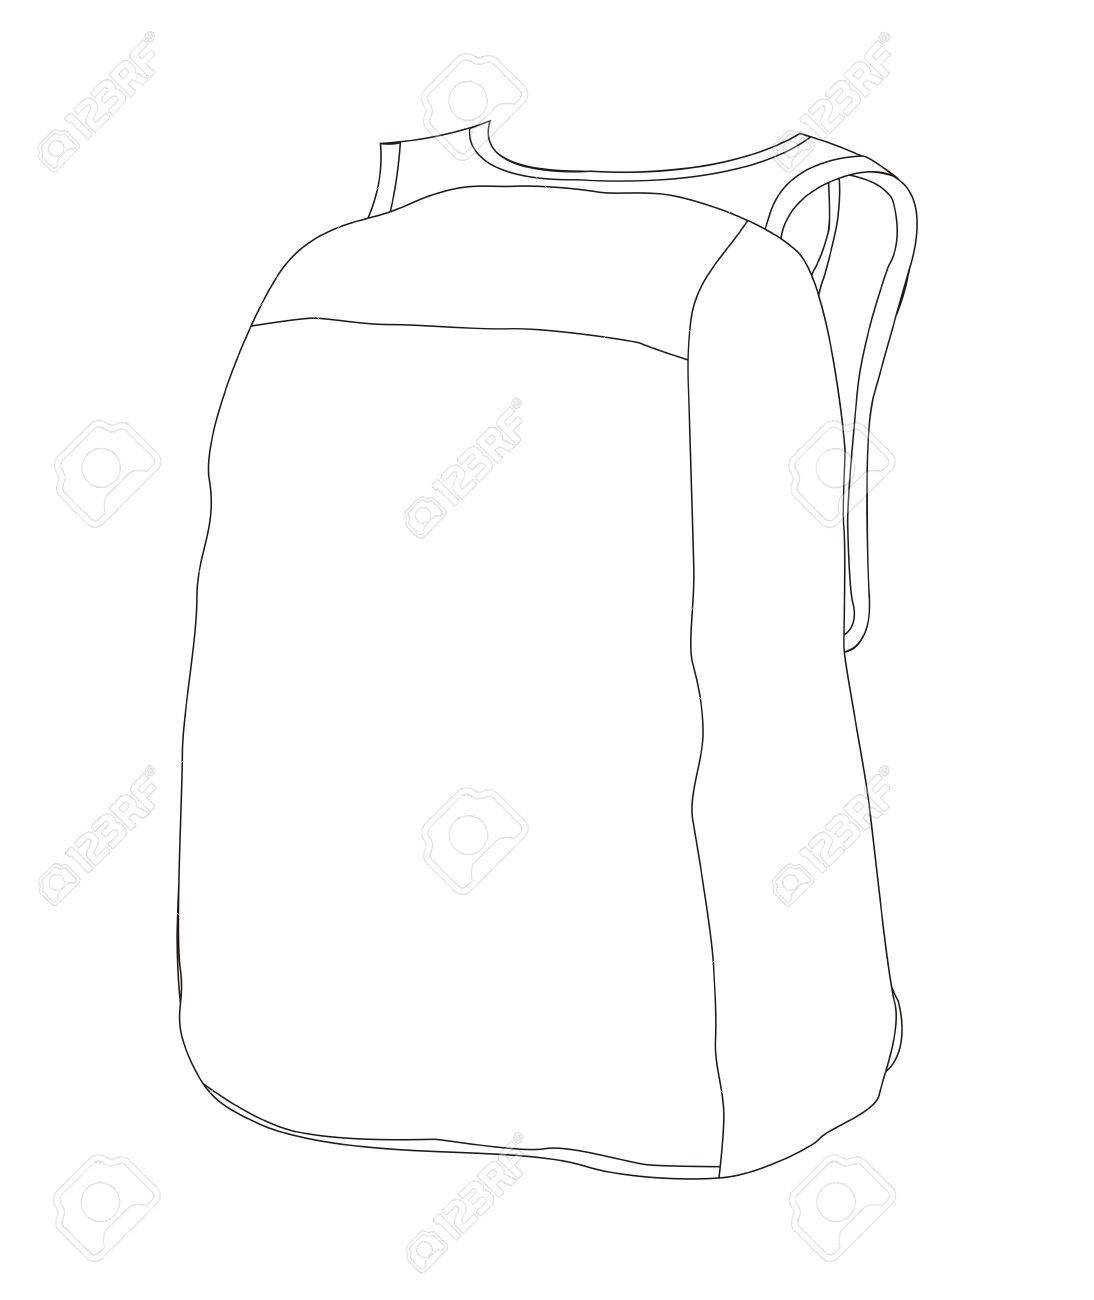 template of a bag